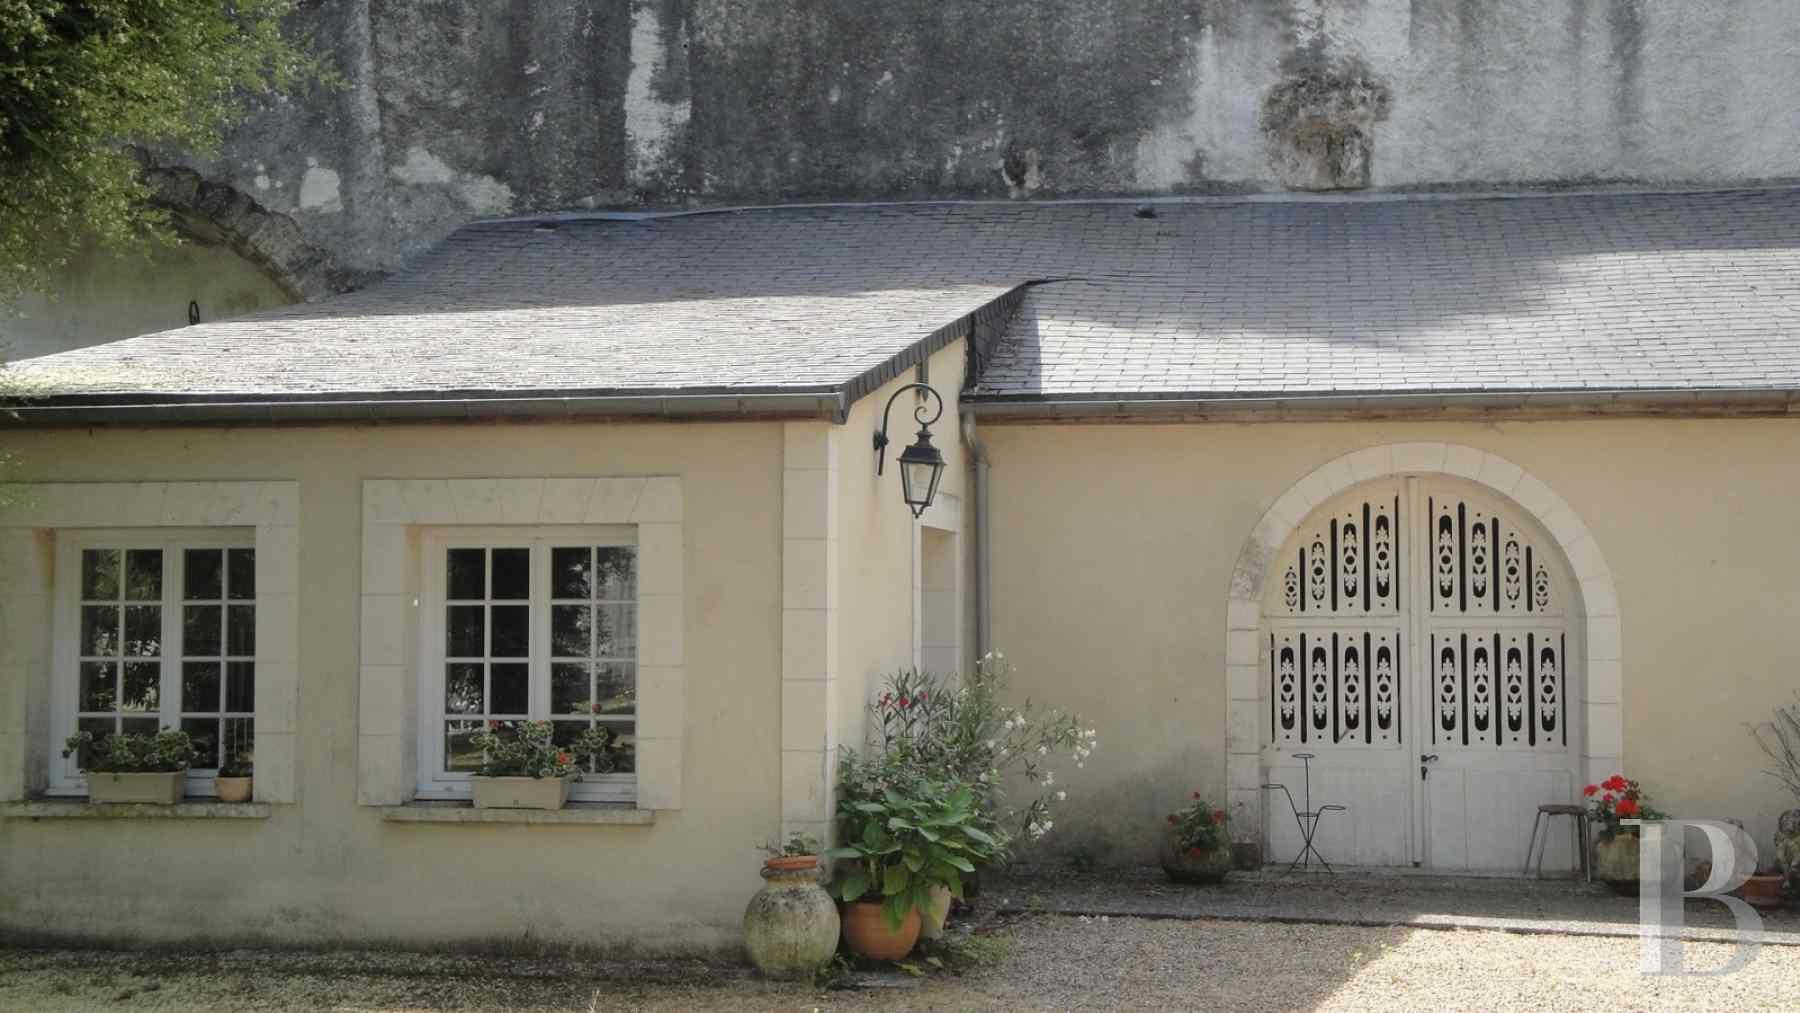 property for sale France center val de loire large luxurious - 8 zoom